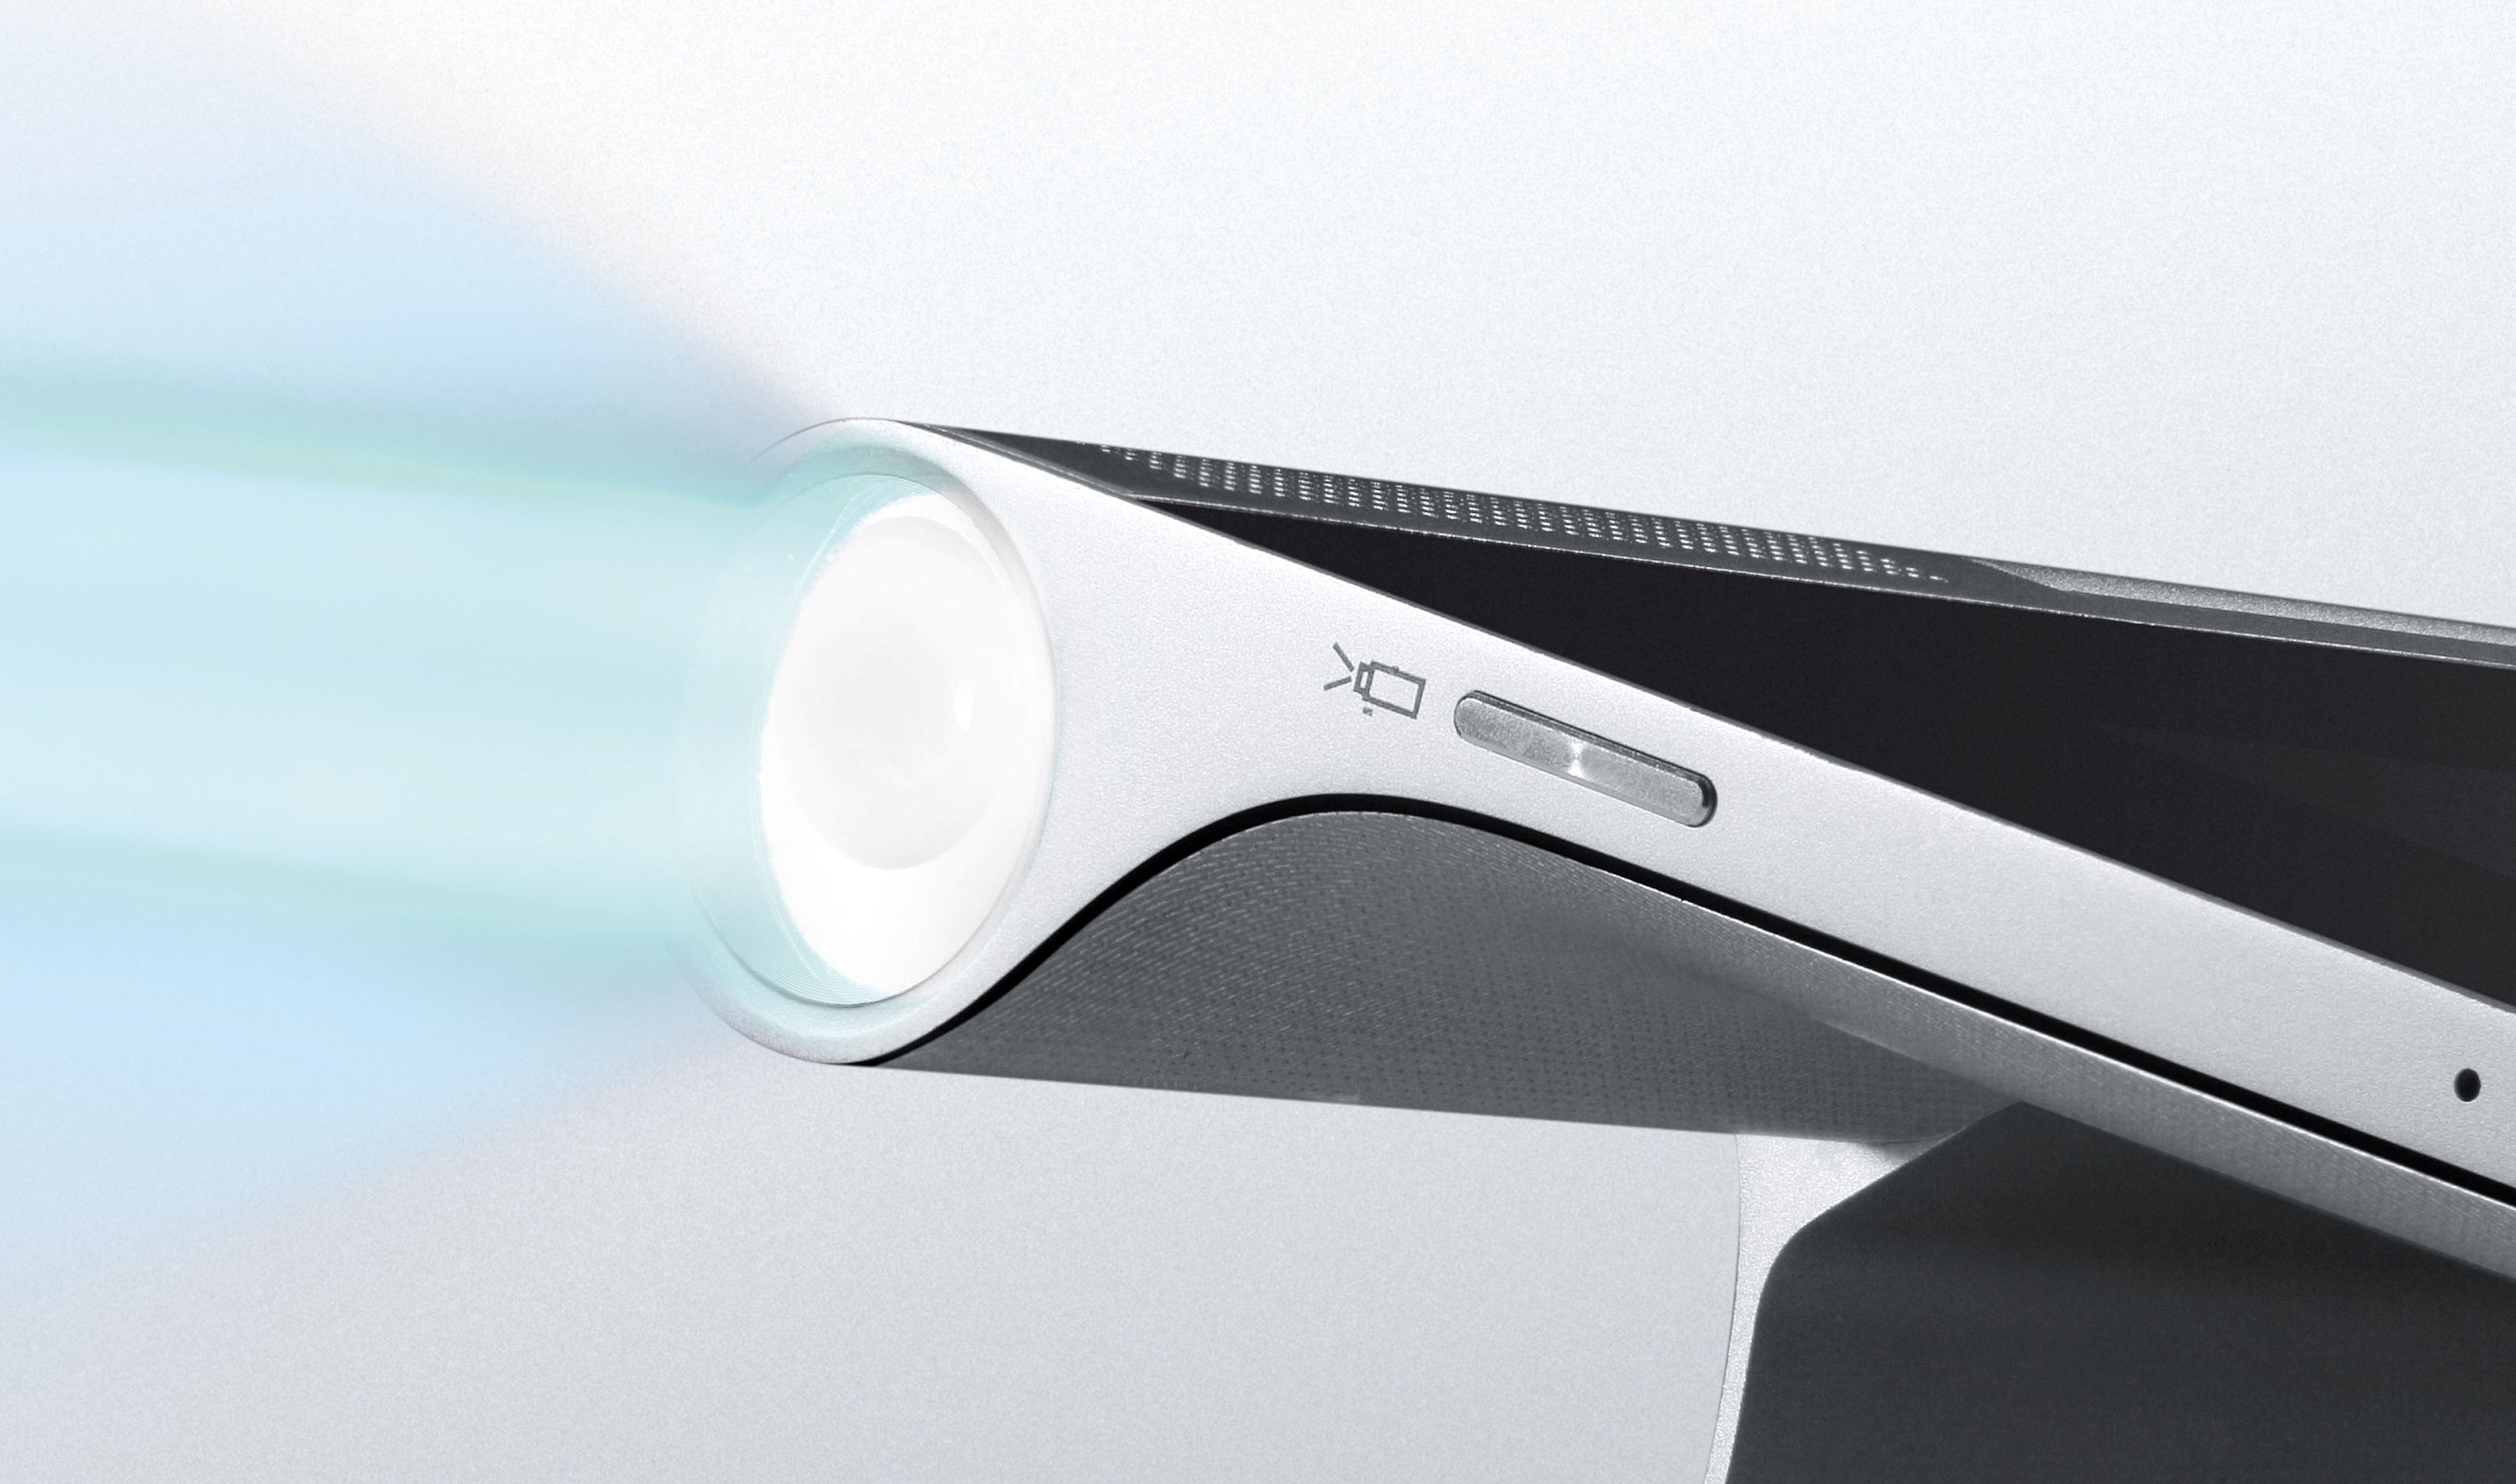 Watch the Yoga Tablet 2 Pro With Built in Projector